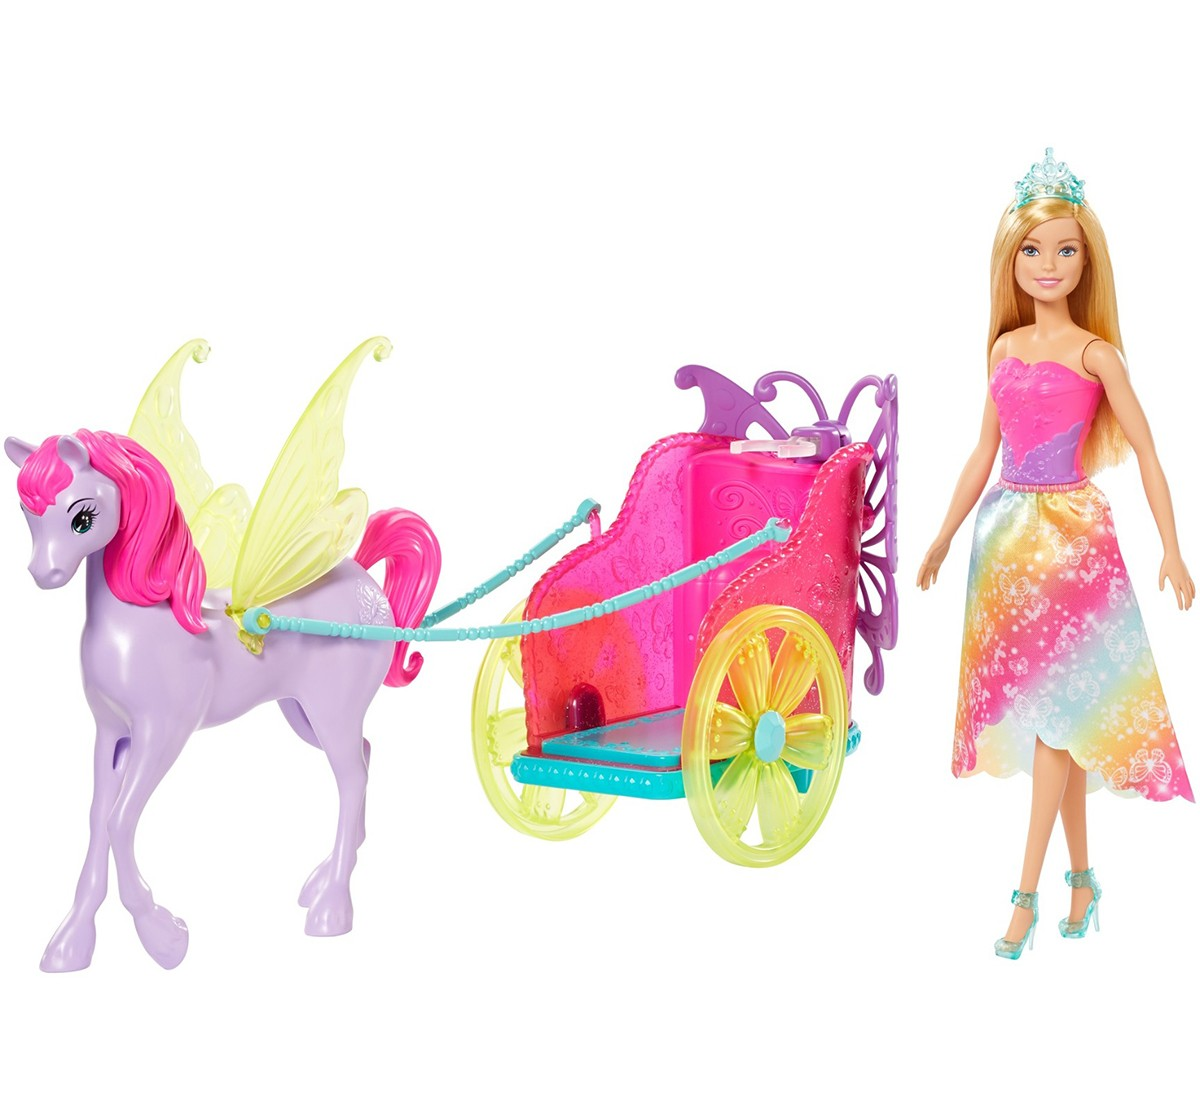 BARBIE  Princess Doll, Fantasy Horse & Chariot Dolls & Accessories for Girls age 3Y+